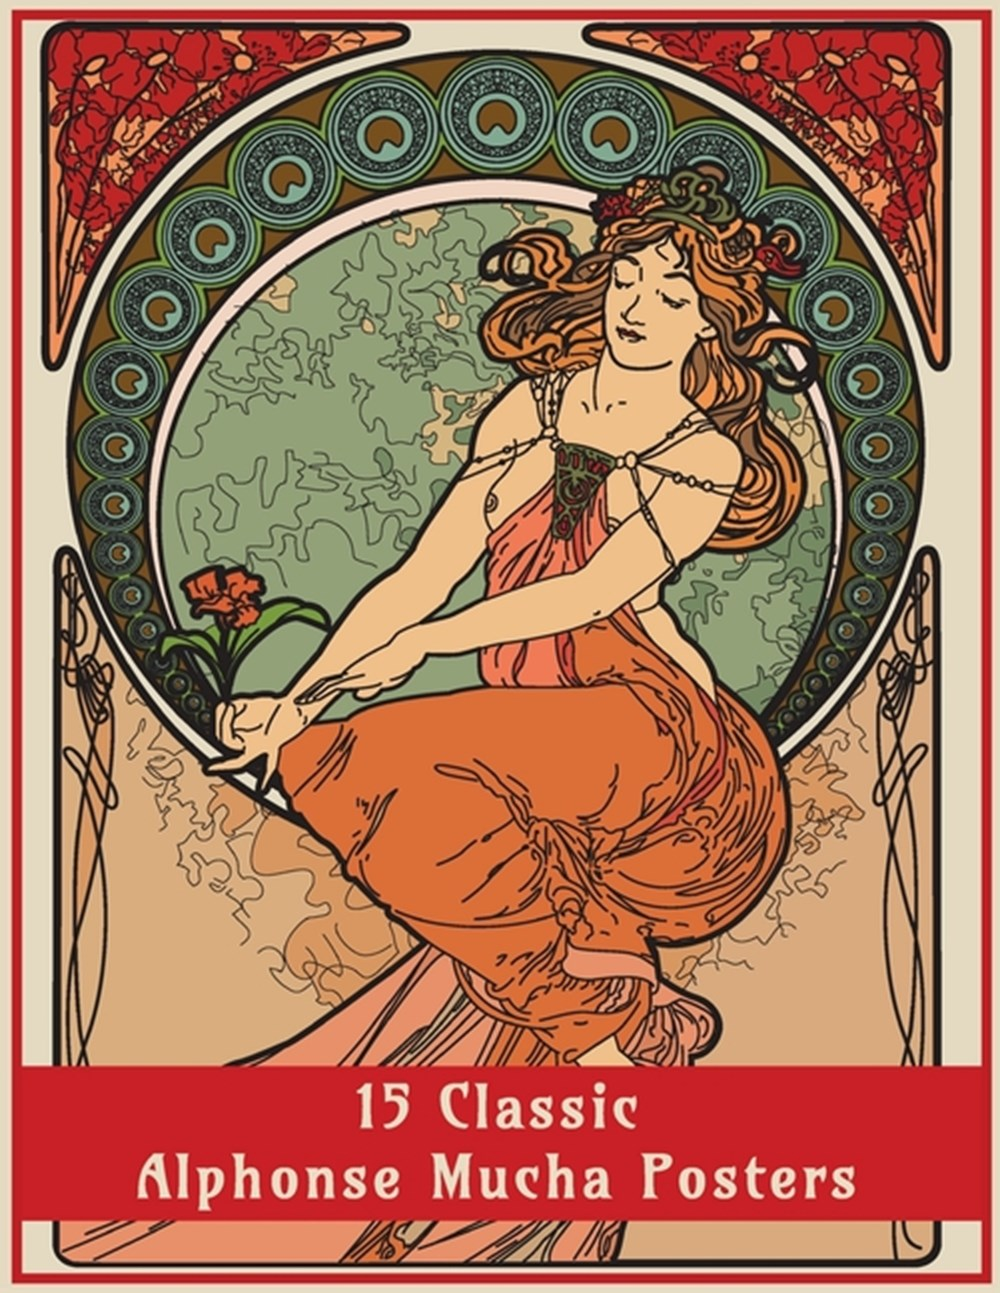 15 Classic Alphonse Mucha Posters An Art Nouveau Coloring Book